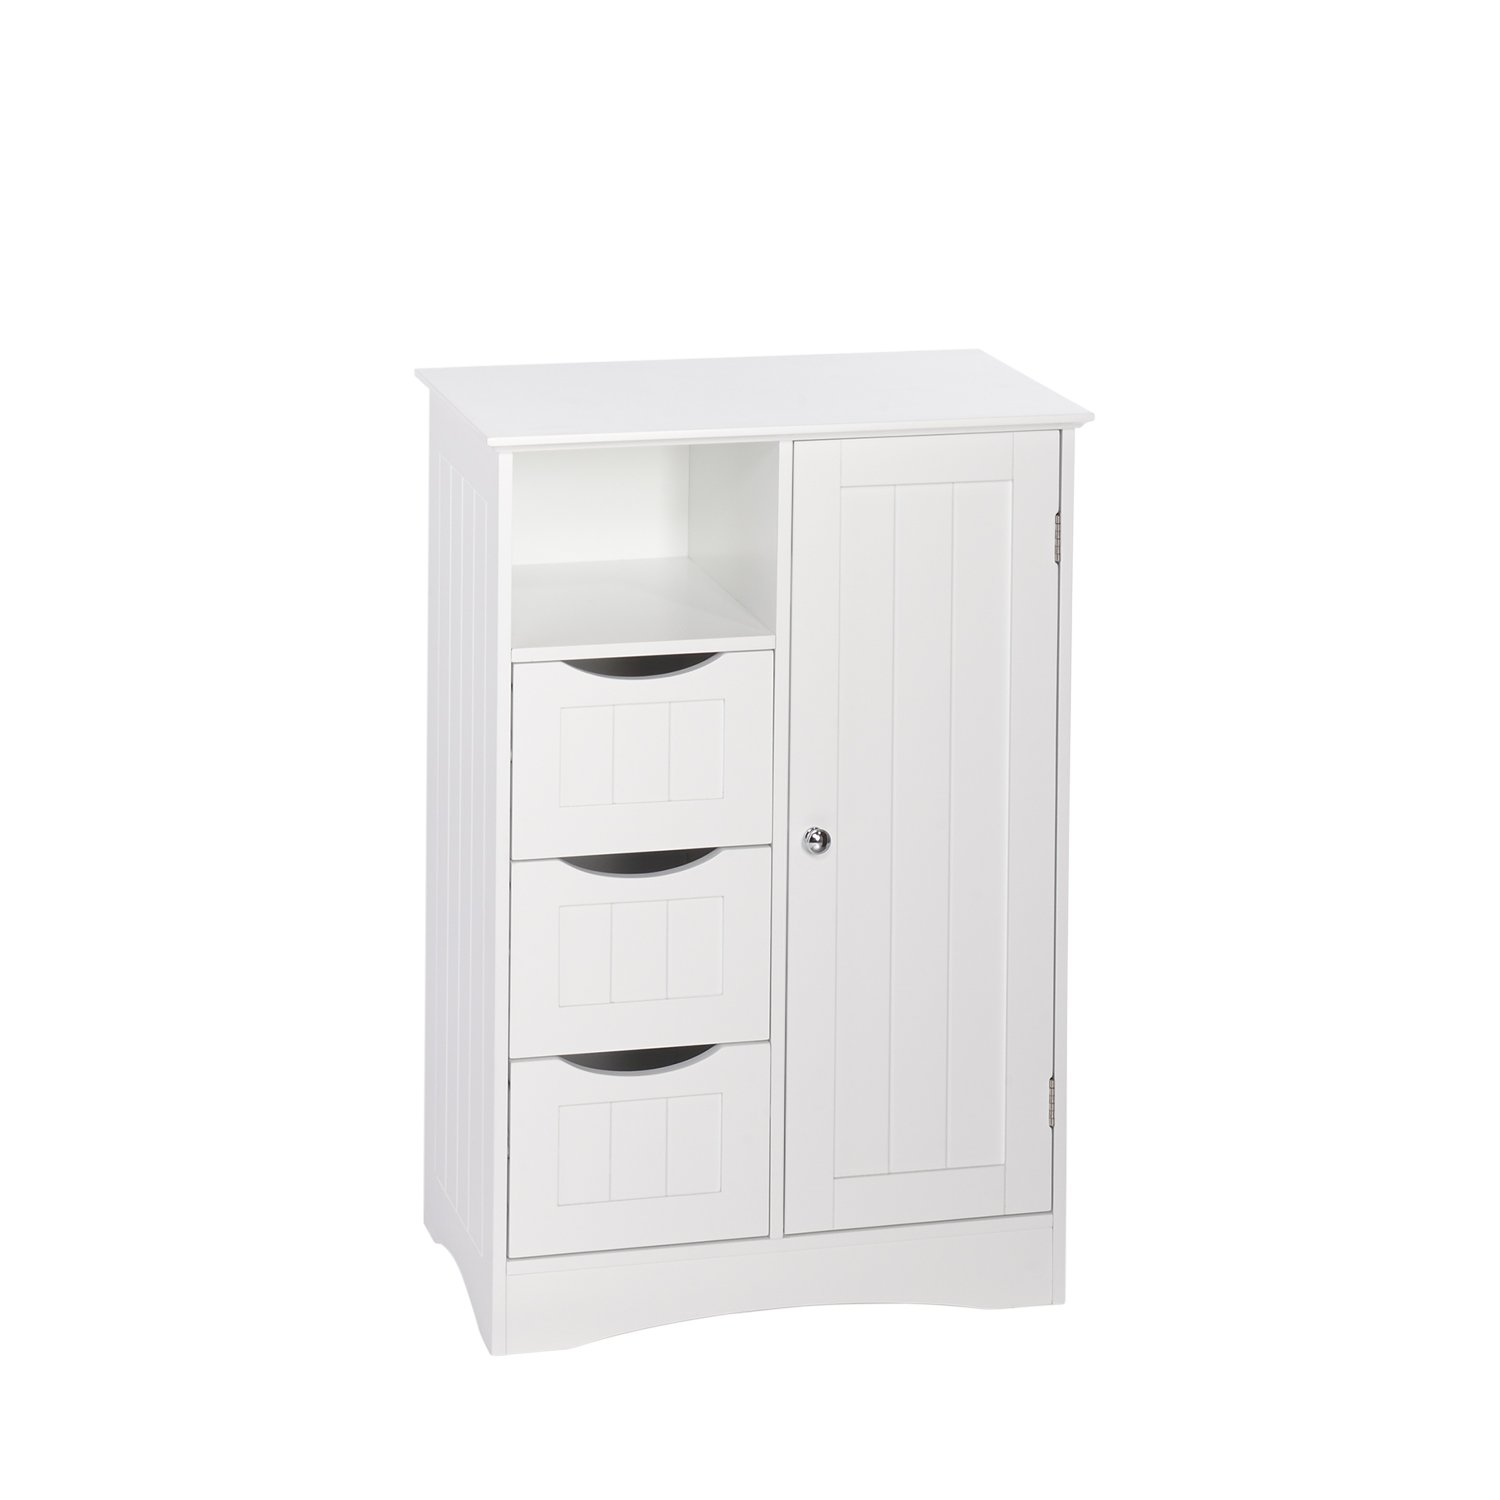 RiverRidge Ashland Collection 1 Door, 3 Drawer Floor Cabinet, White